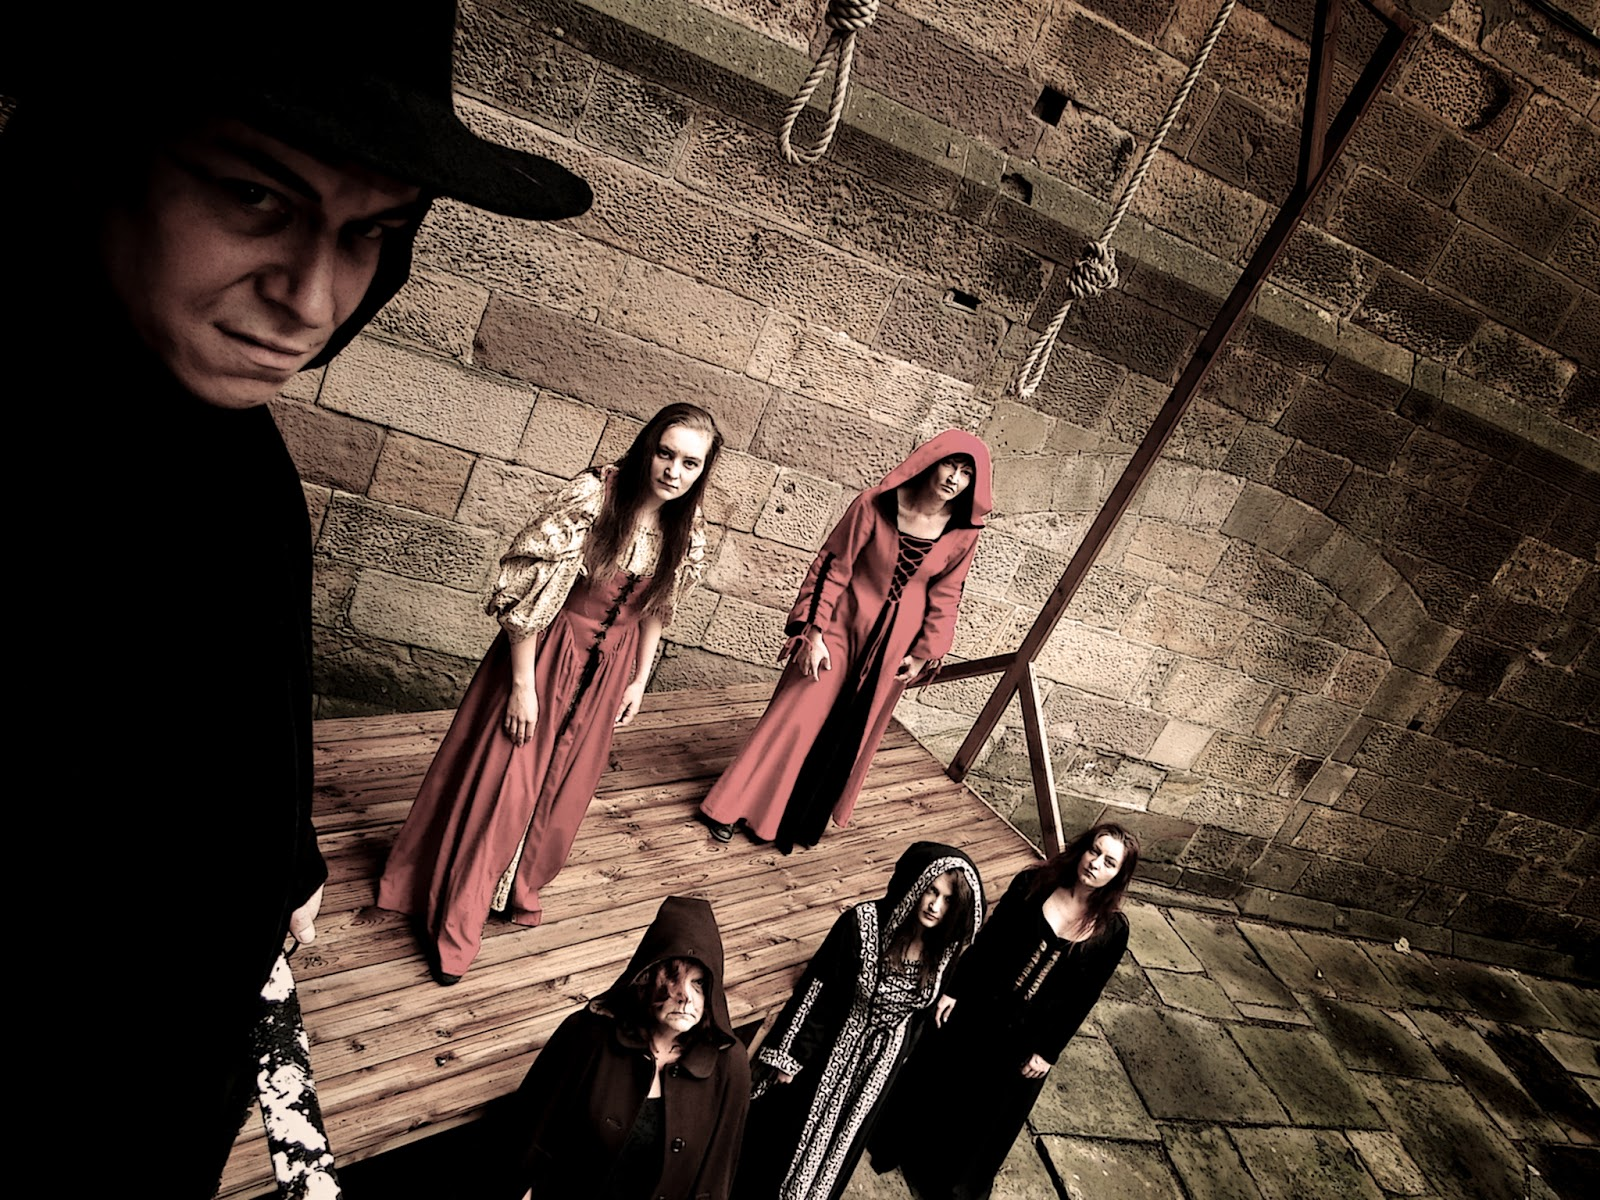 witchcraft in the 17th century The crime that has attracted the attention of historians more than any other in early modern england is witchcraft it is a complex subject, not least because early modern beliefs regarding.